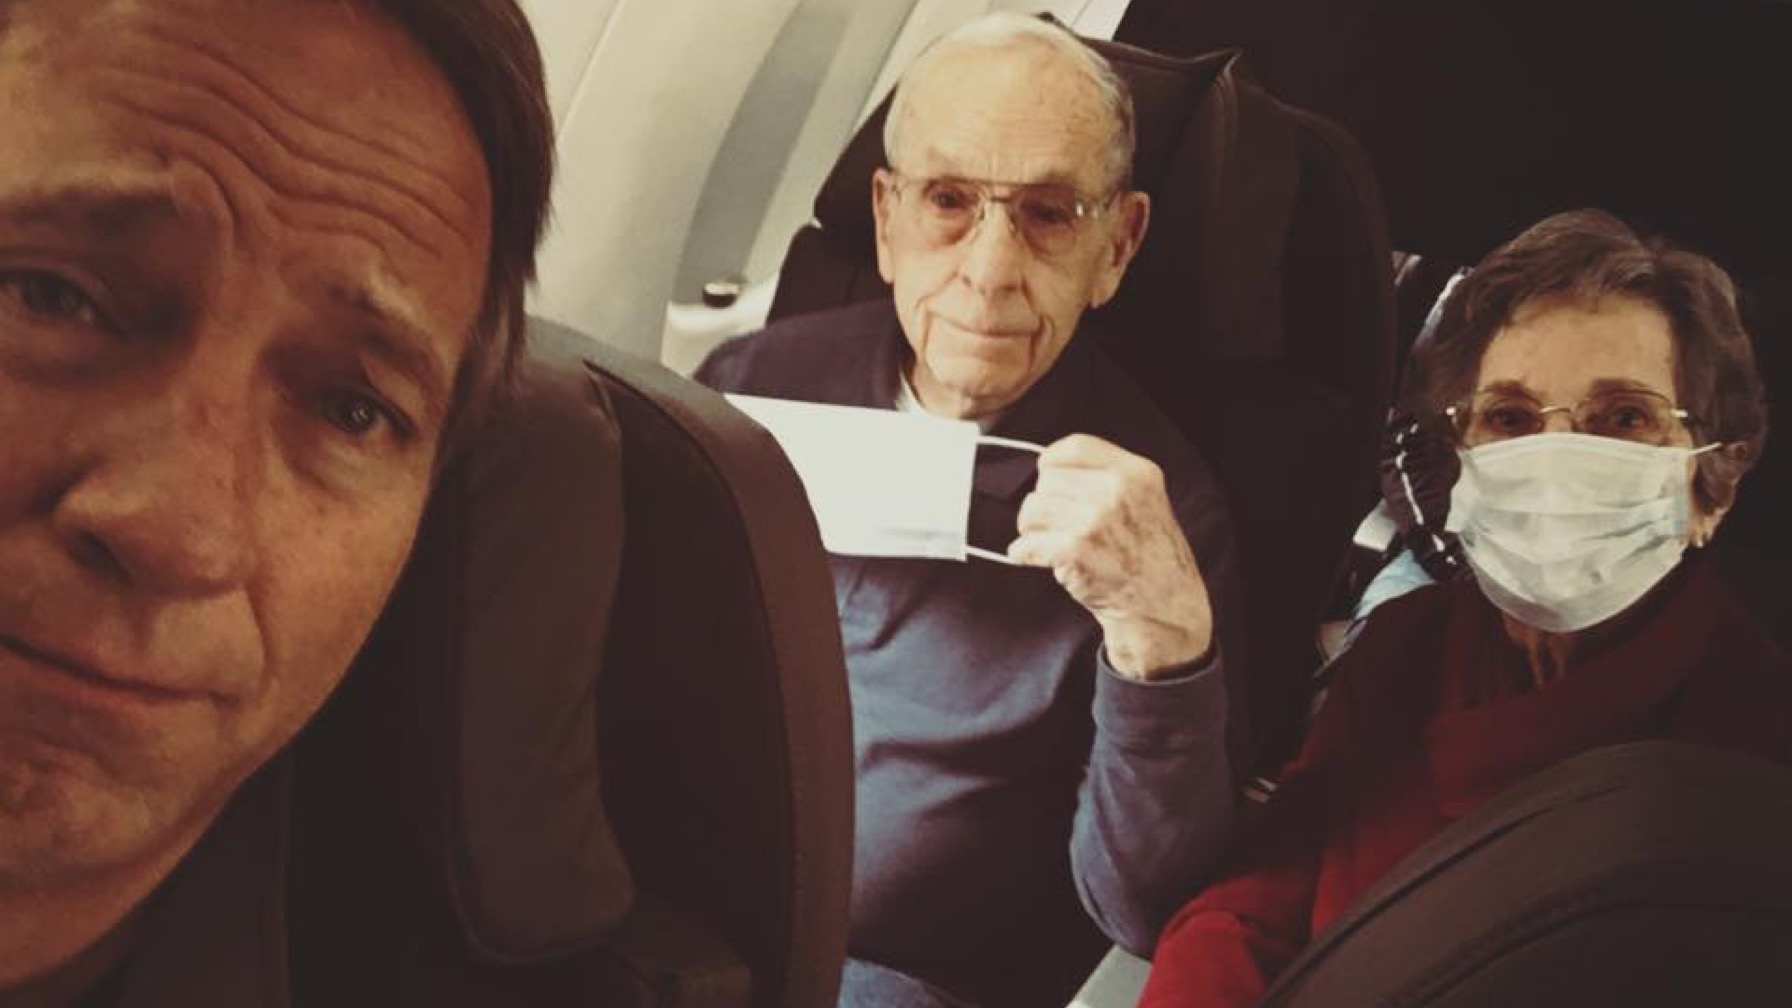 Mike Rowe Proves Traveling With Parents Is a Dirty Job